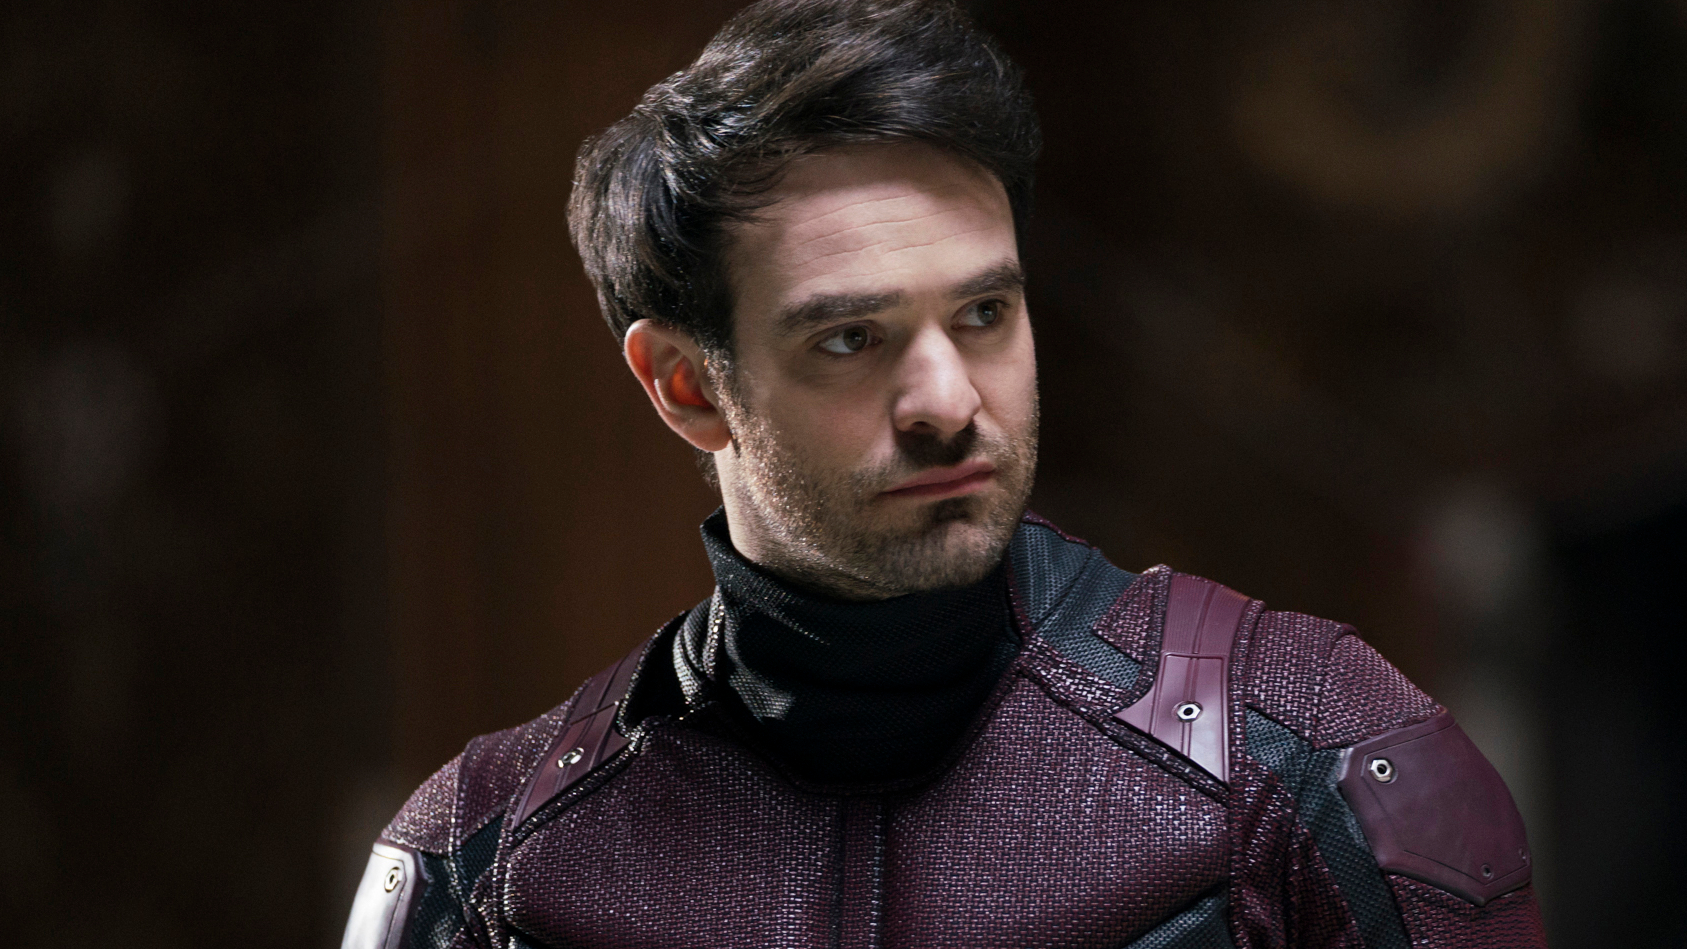 #SaveDaredevil: Fans Rally To Get Charlie Cox In The MCU